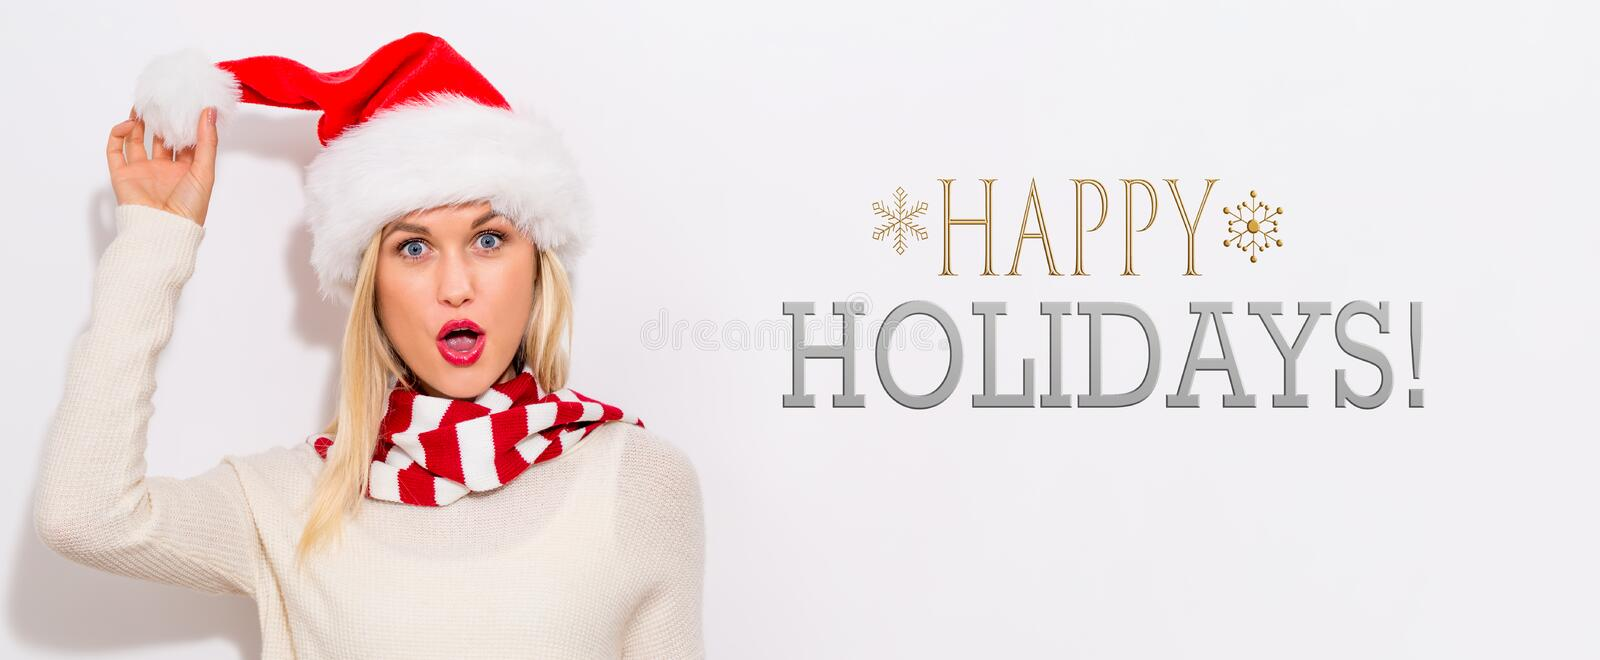 Happy holidays message with woman with Santa hat stock images